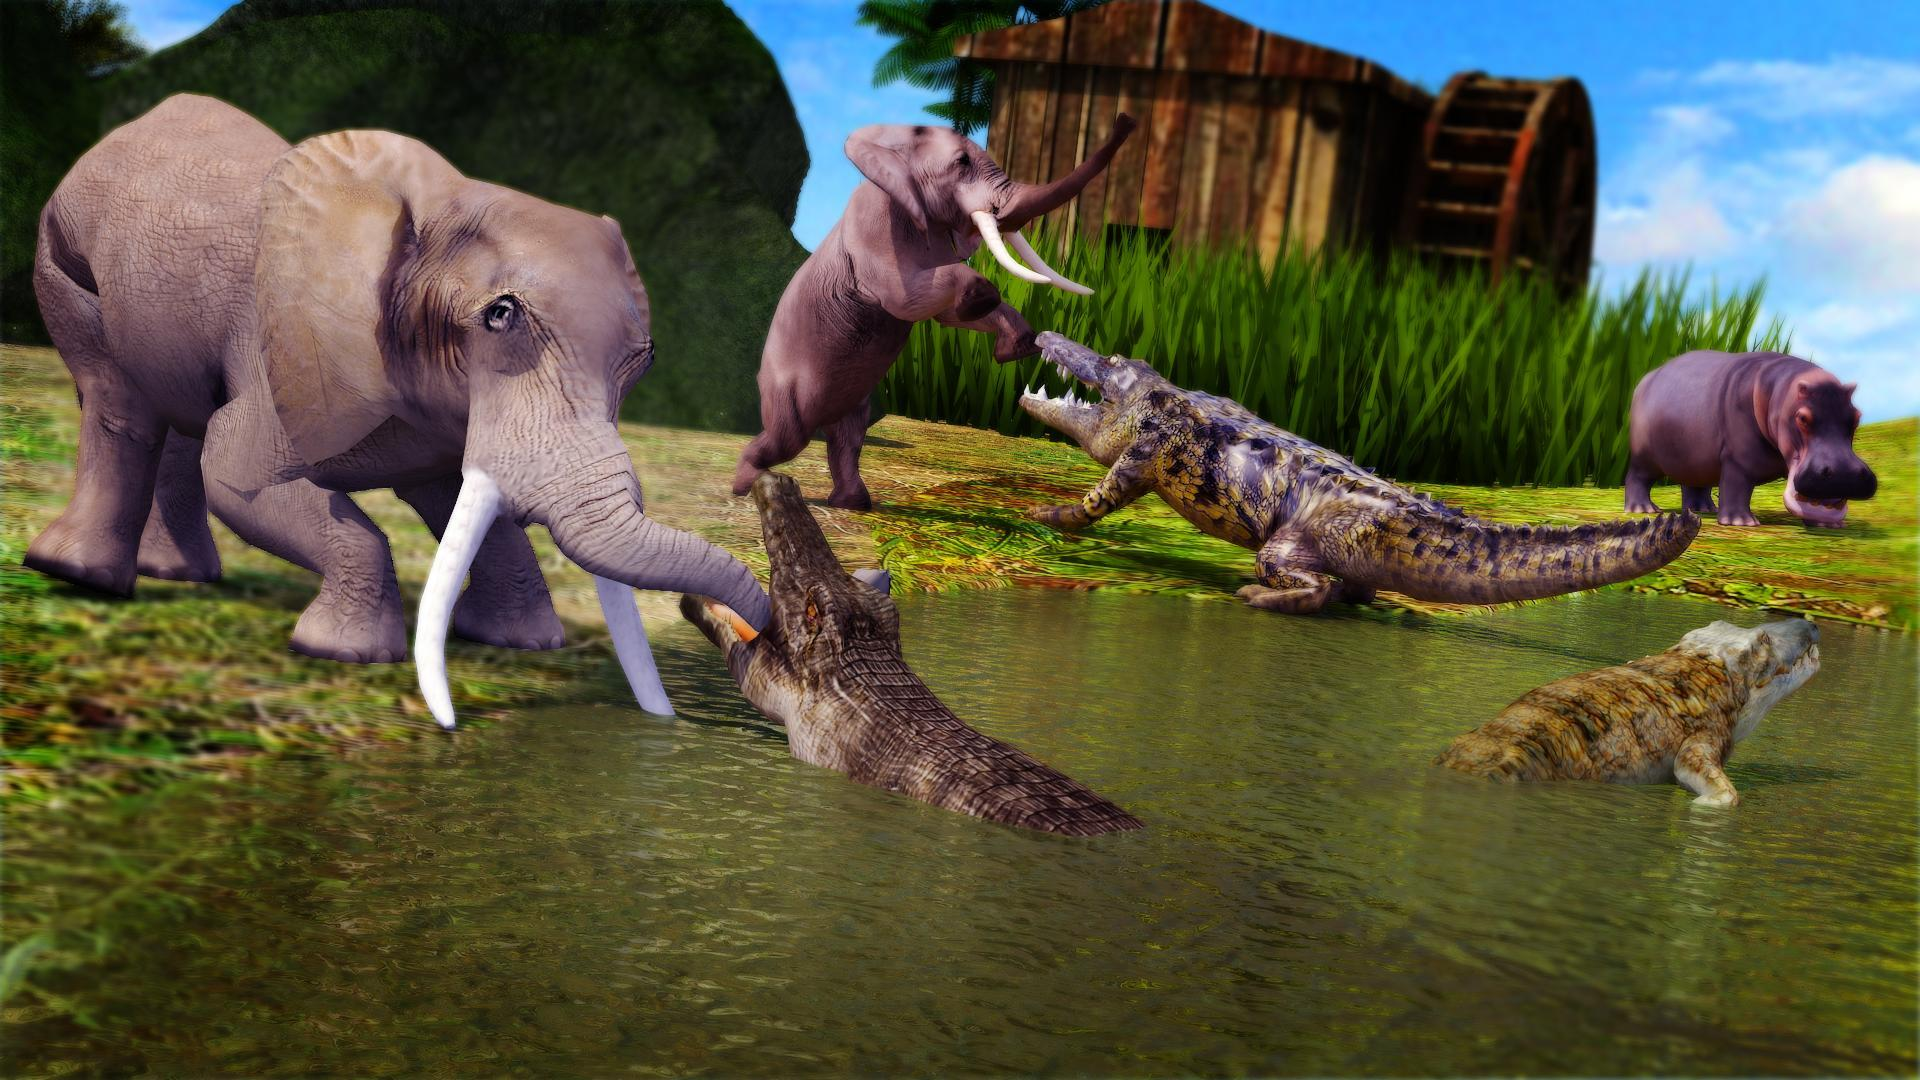 Animal Attack Simulator -Wild Hunting Games 1.0.37 Screenshot 9